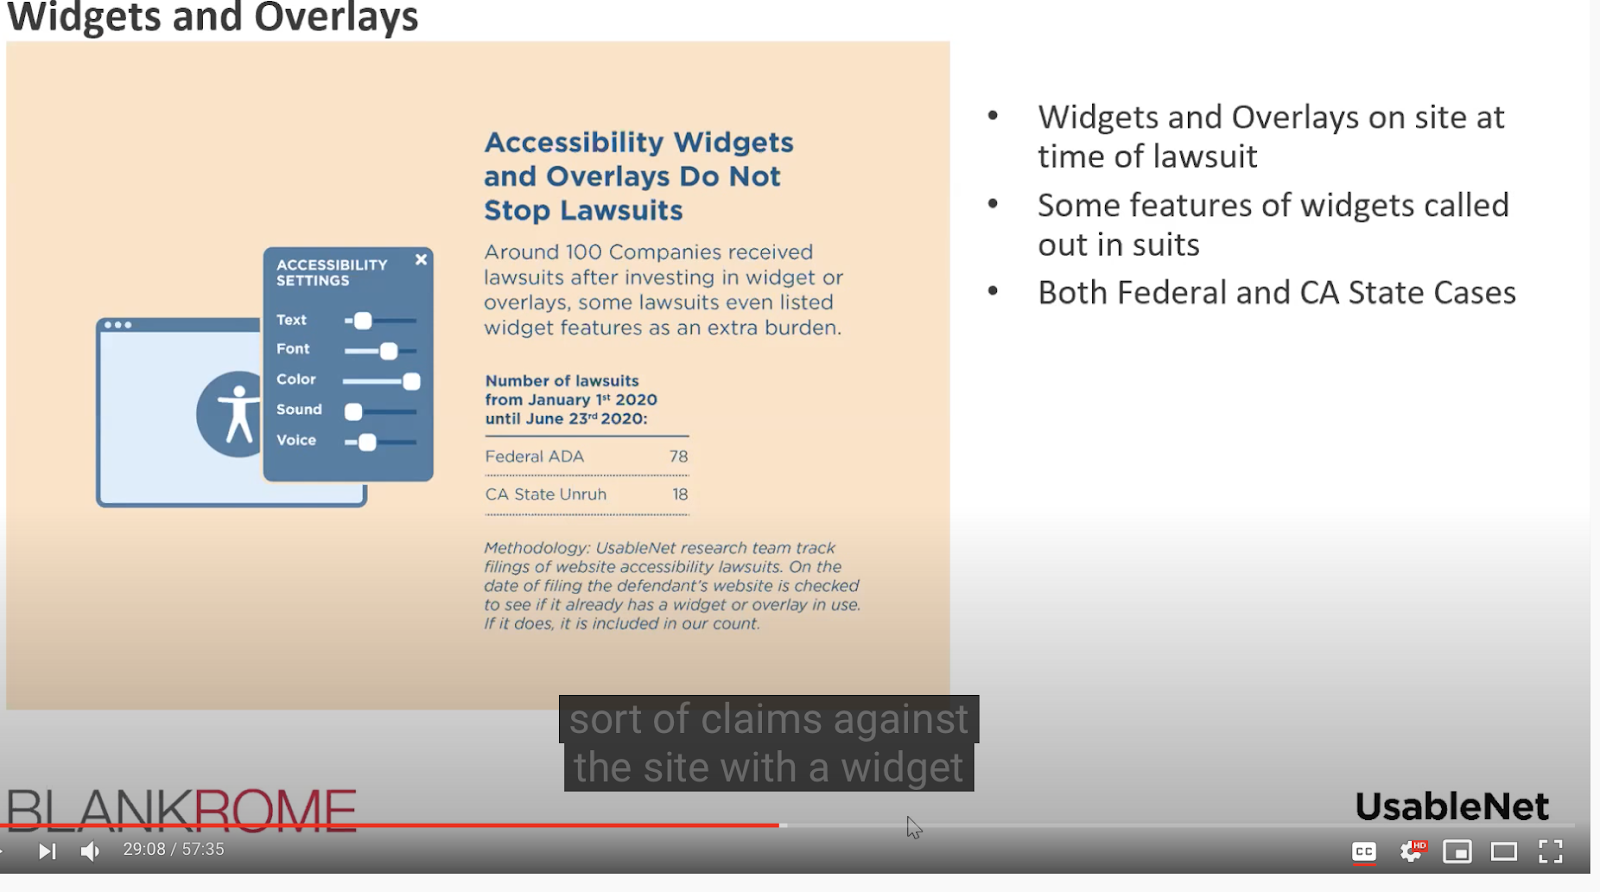 Video link: A control for adjusting accessibility settings overlaps the universal digital accessibility symbol.  Text reads: Around 100 Companies received lawsuits after investing in widget or overlays, some lawsuits even listed widget features as an extra burden. Number of lawsuits from January 1st 2020 until June 23rd 2020 for Federal ADA-based suits was 78 and for Unruh-based claims was 18 in California state court.